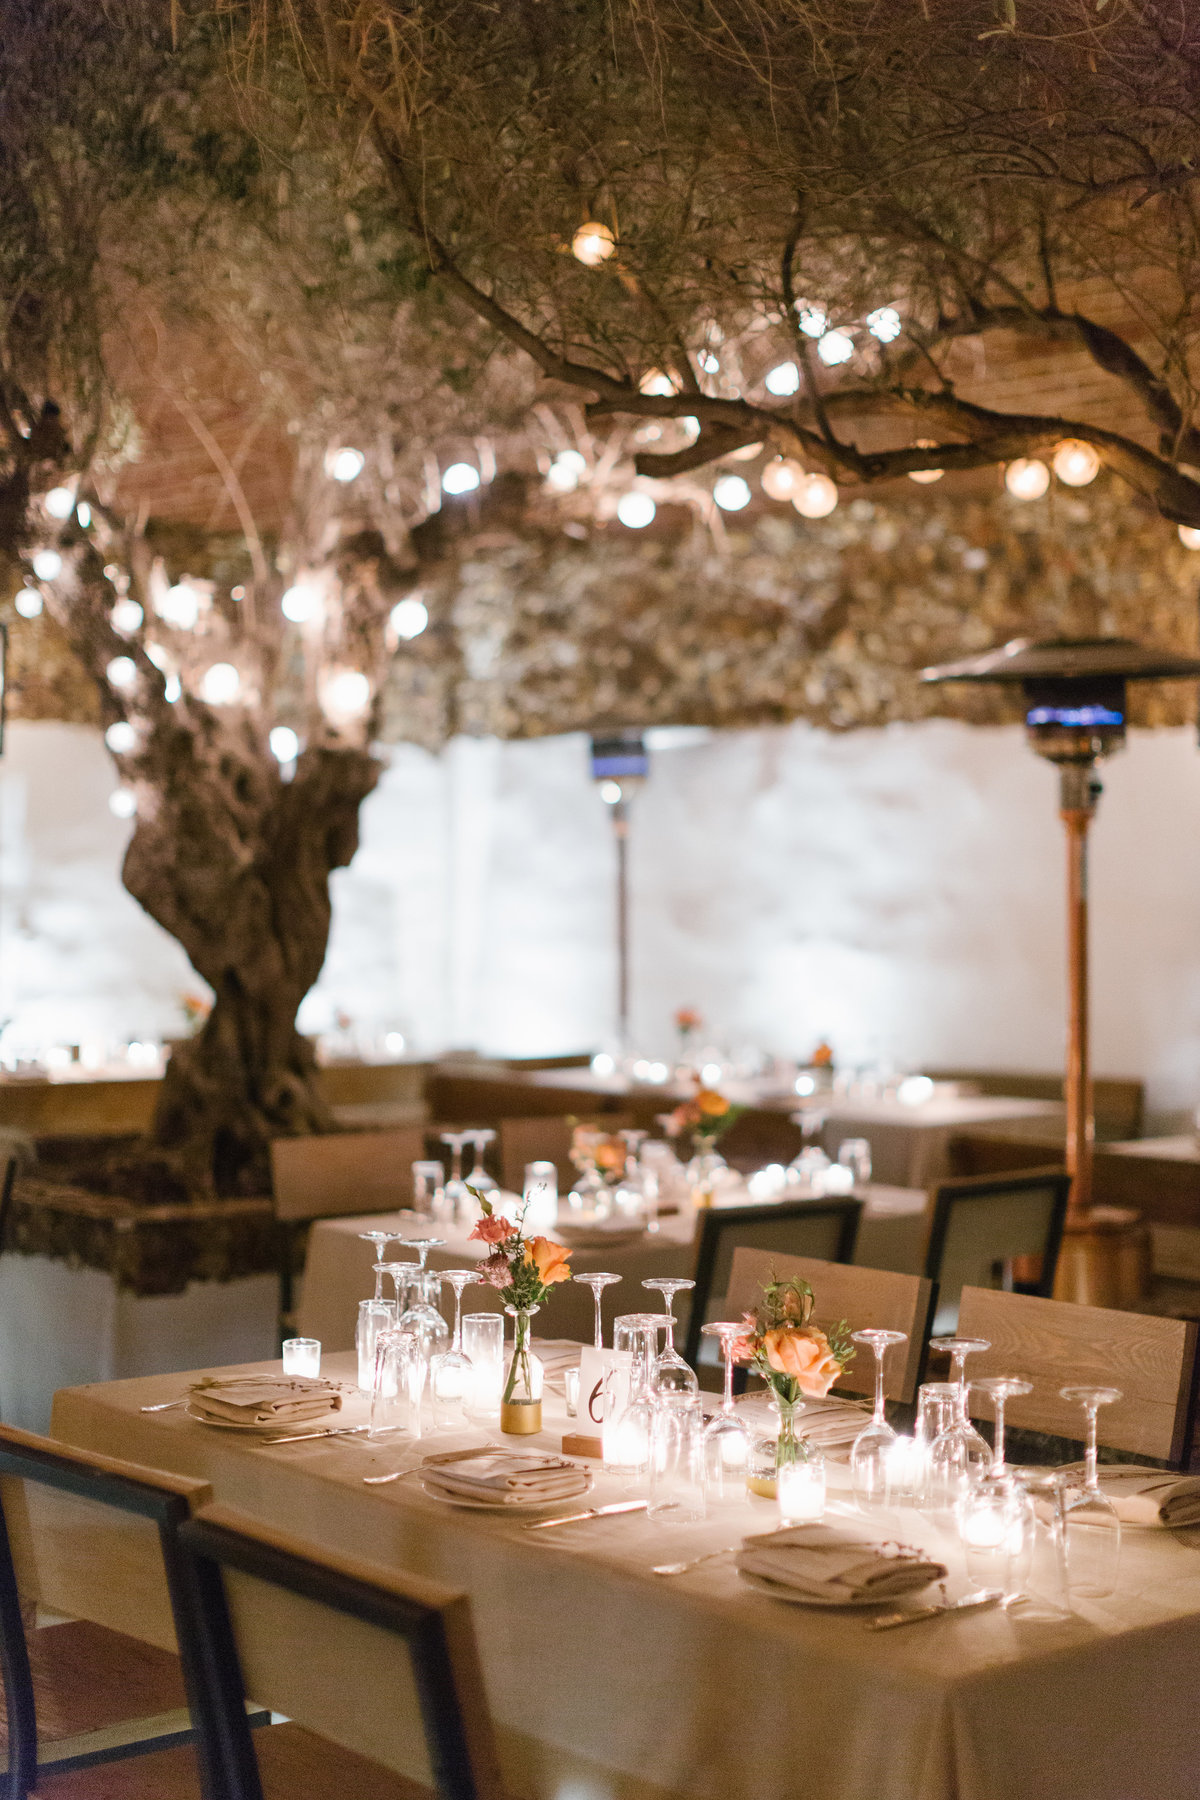 Intimate-Romantic-Santa-Barbara-Wedding-Venue-37